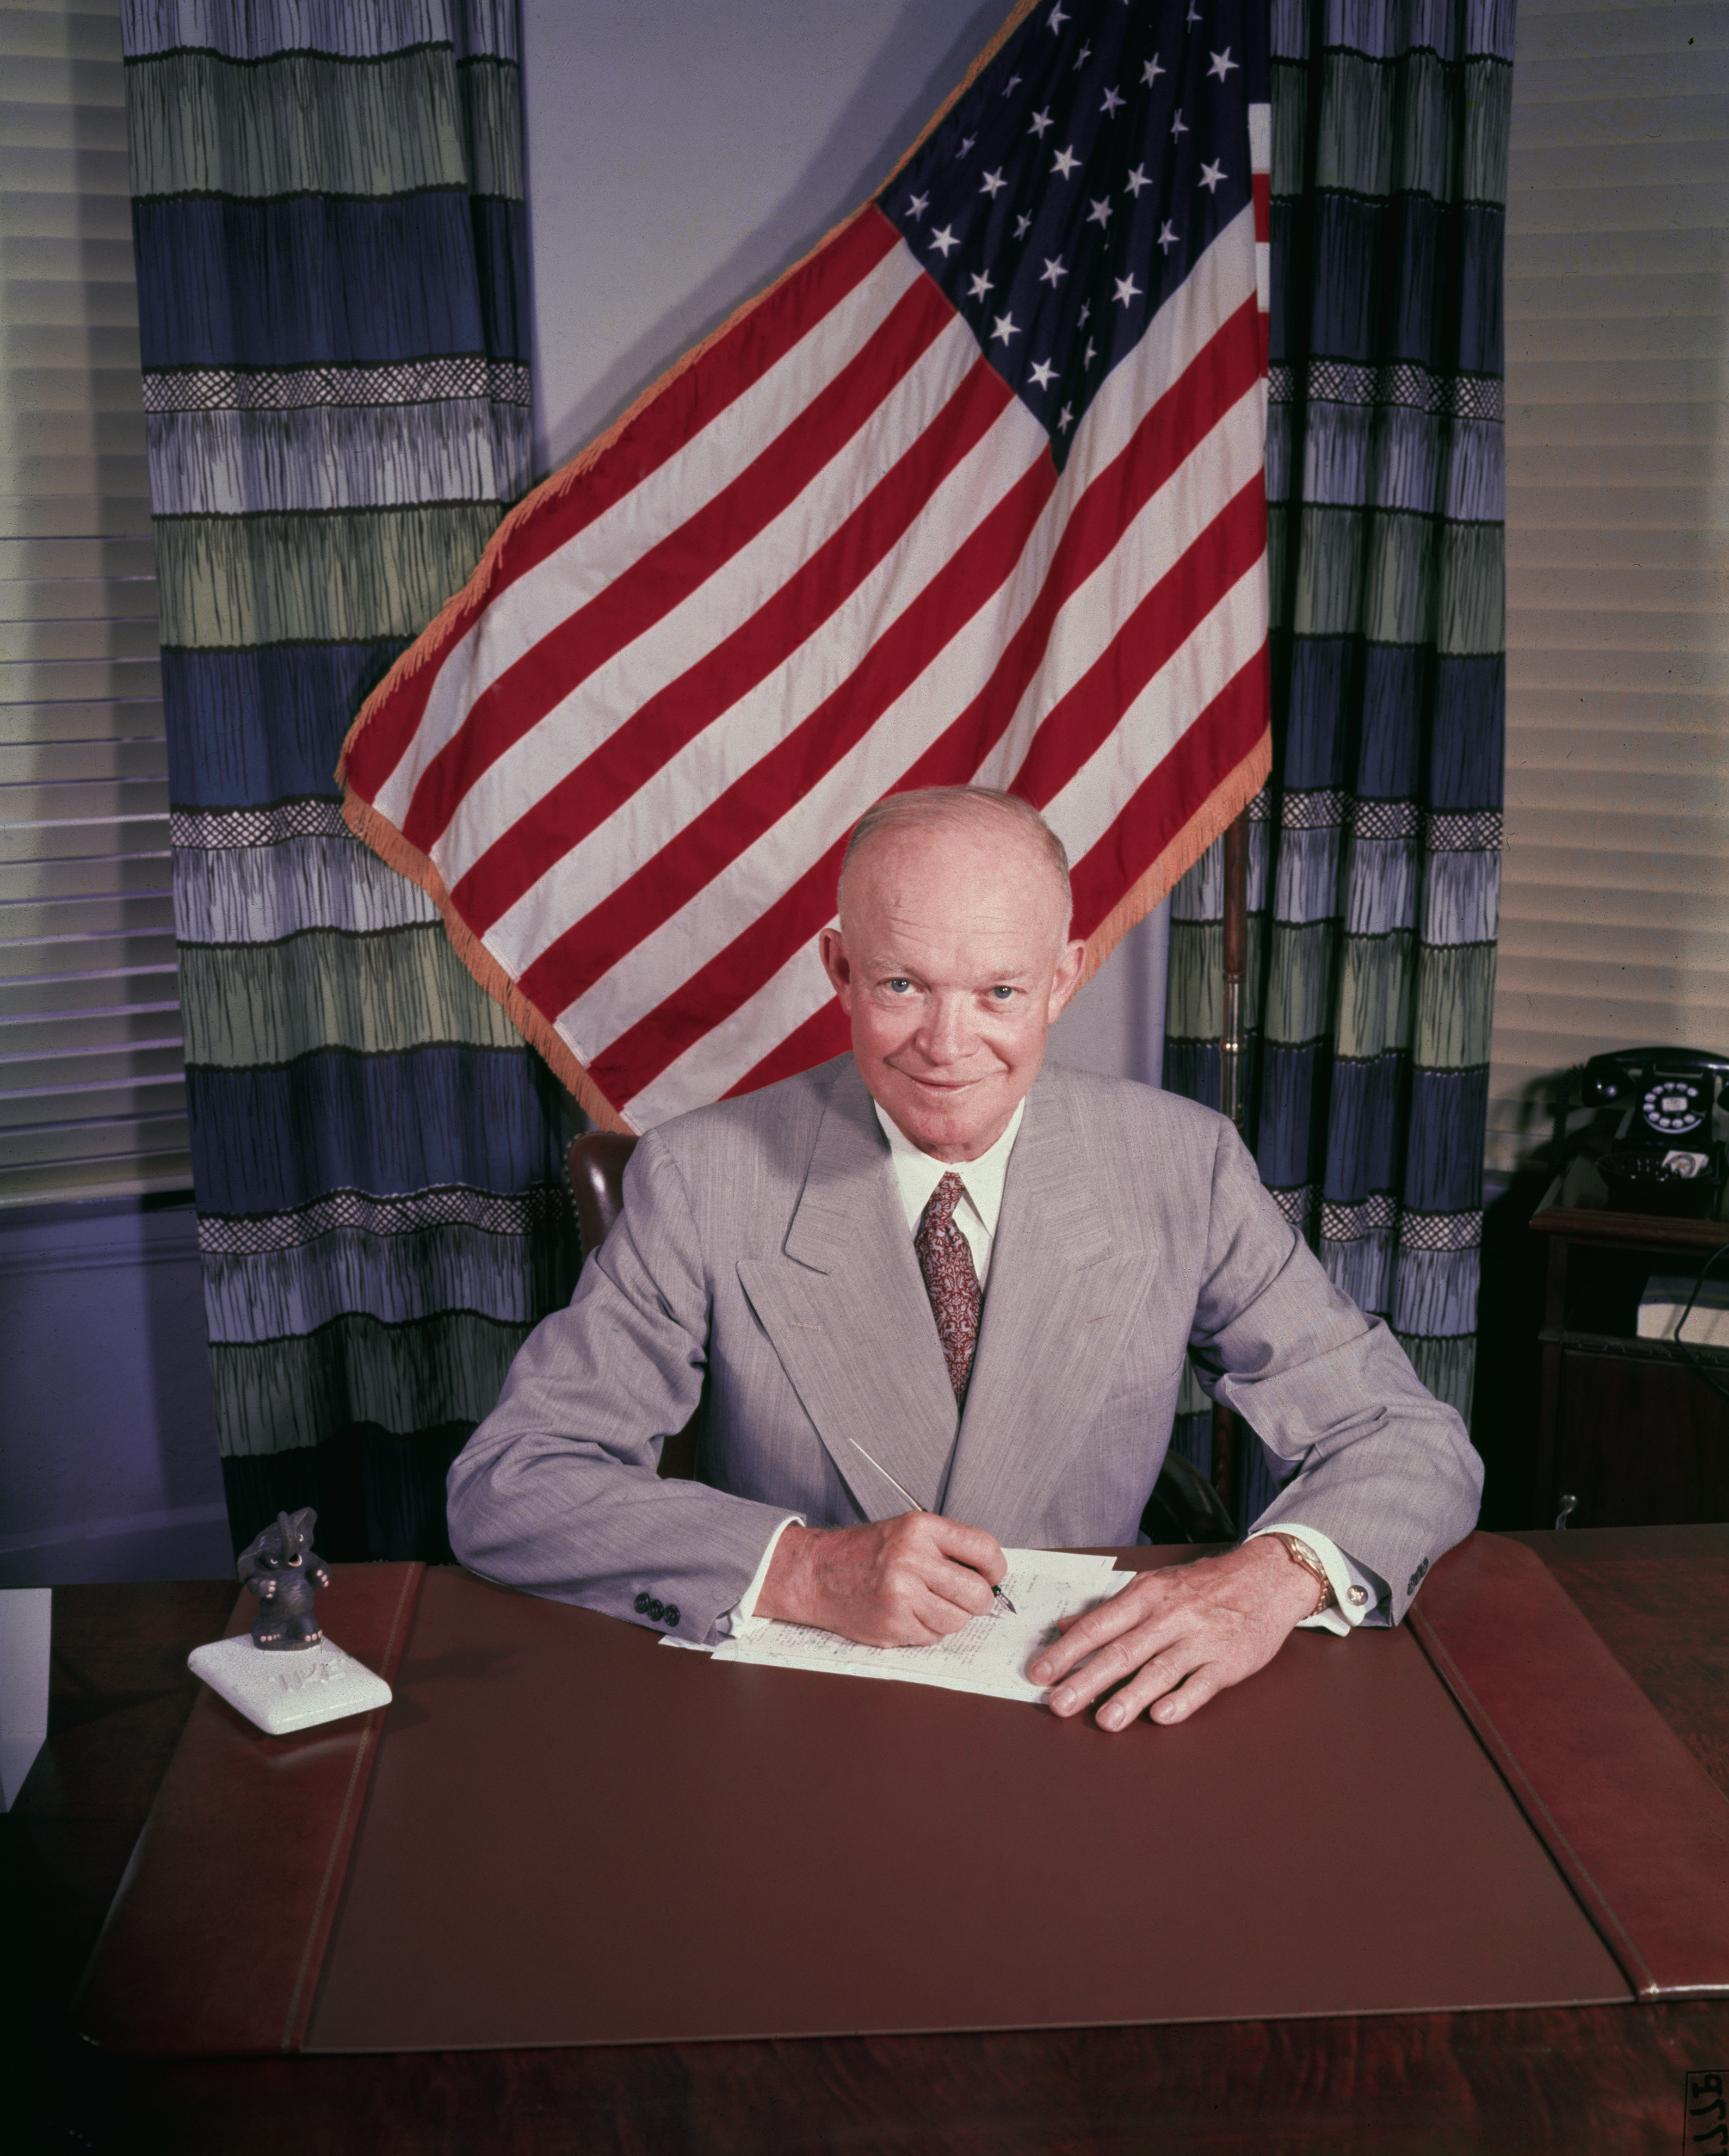 a biography of dwight david eisenhower a president of the united states The first head of nato president of the united states 18 handicap golfer born  in denison, texas in 1890, dwight david eisenhower – the man destined for.